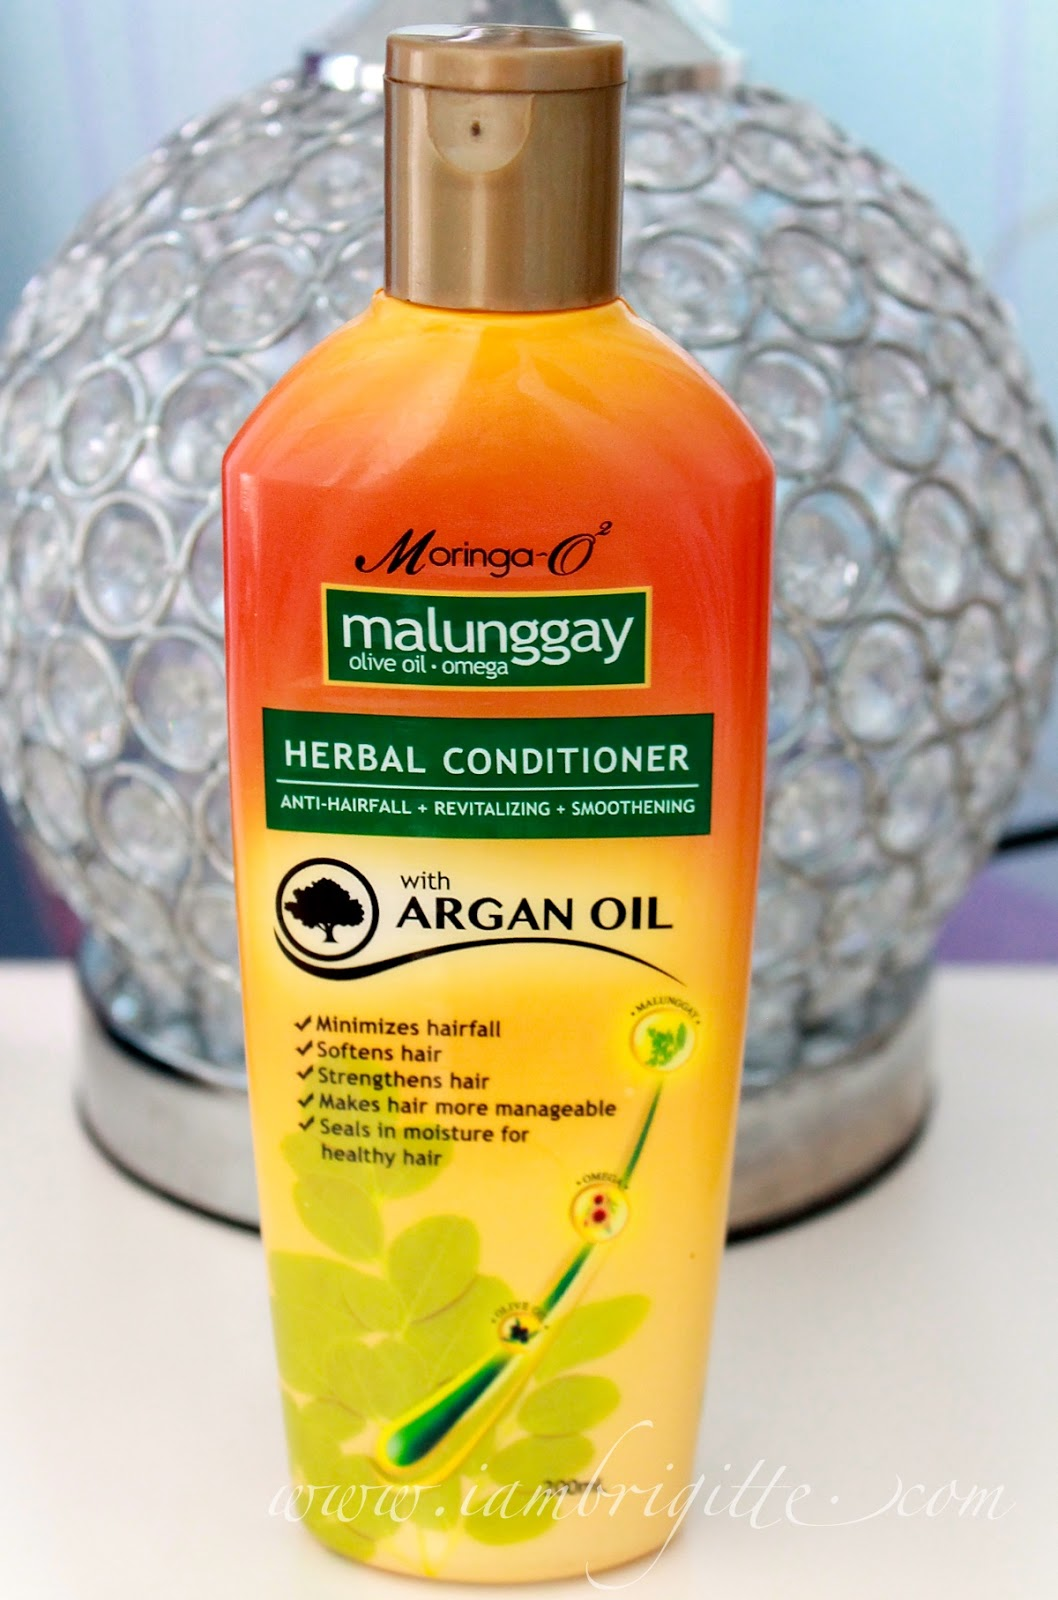 malunggay leaves as shampoo Malunggay for hair loss prevention  malunggay leaves  you can buy malunggay shampoo at any ricky reyes salon branches it comes with separate shampoo.